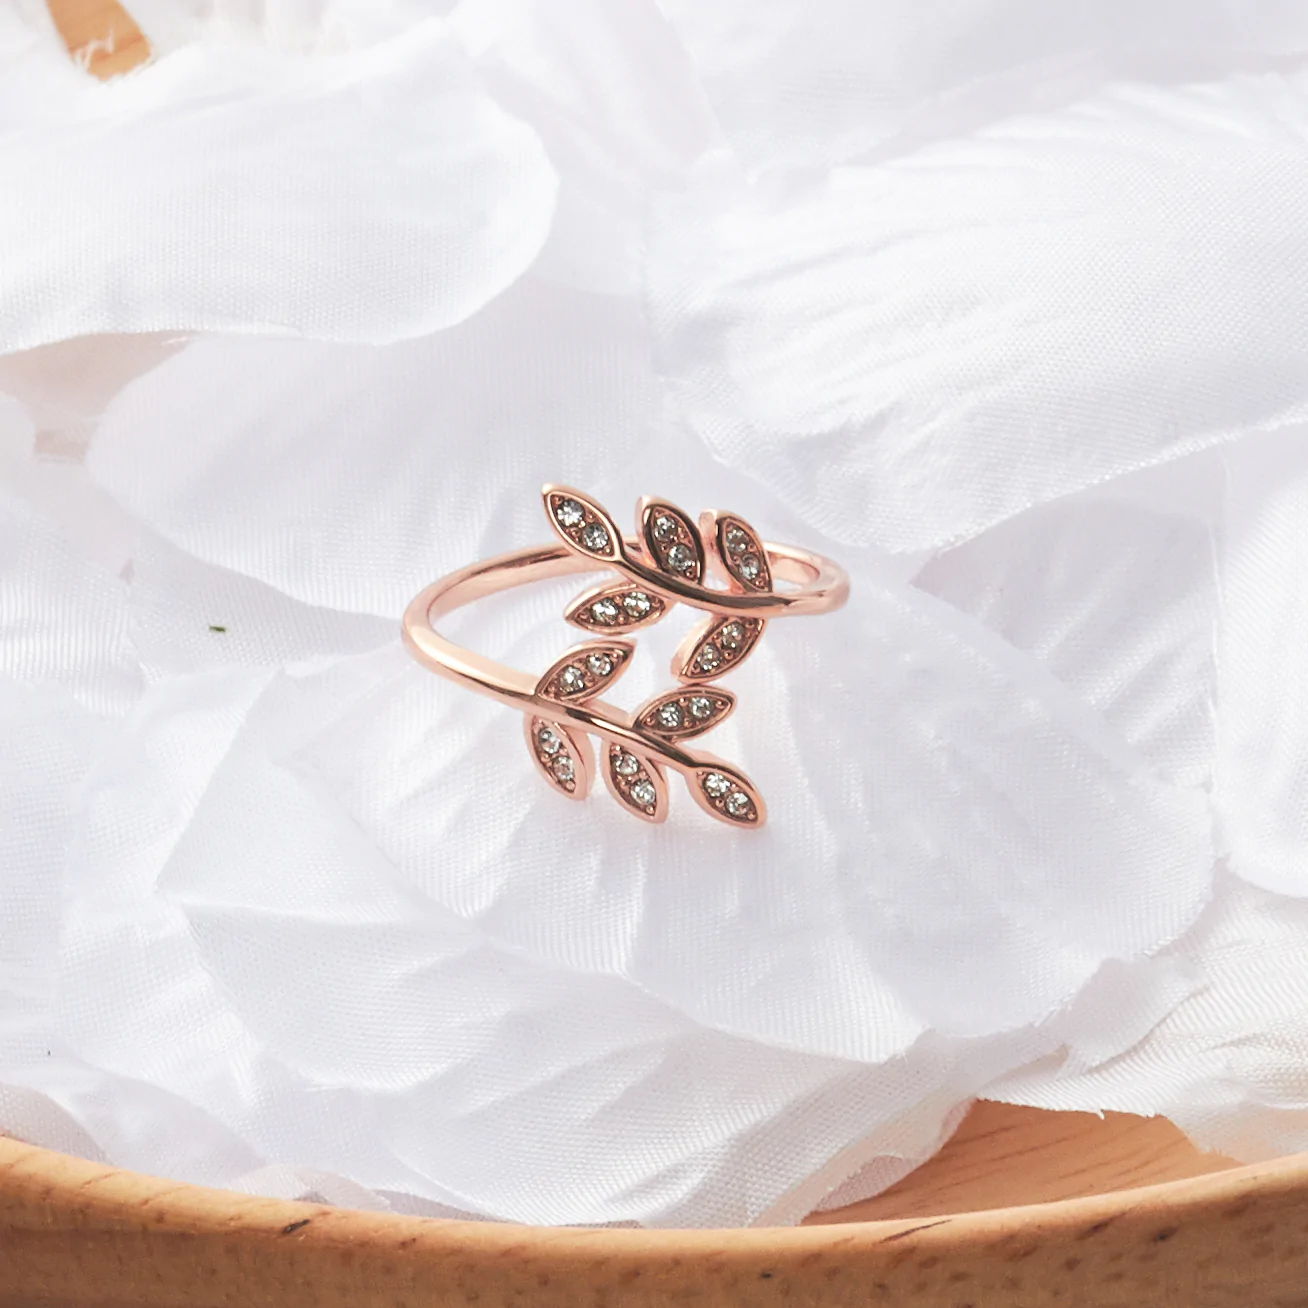 3e6c14a498347 Details about Rose Gold Leaf Ring Created with Swarovski® Crystals